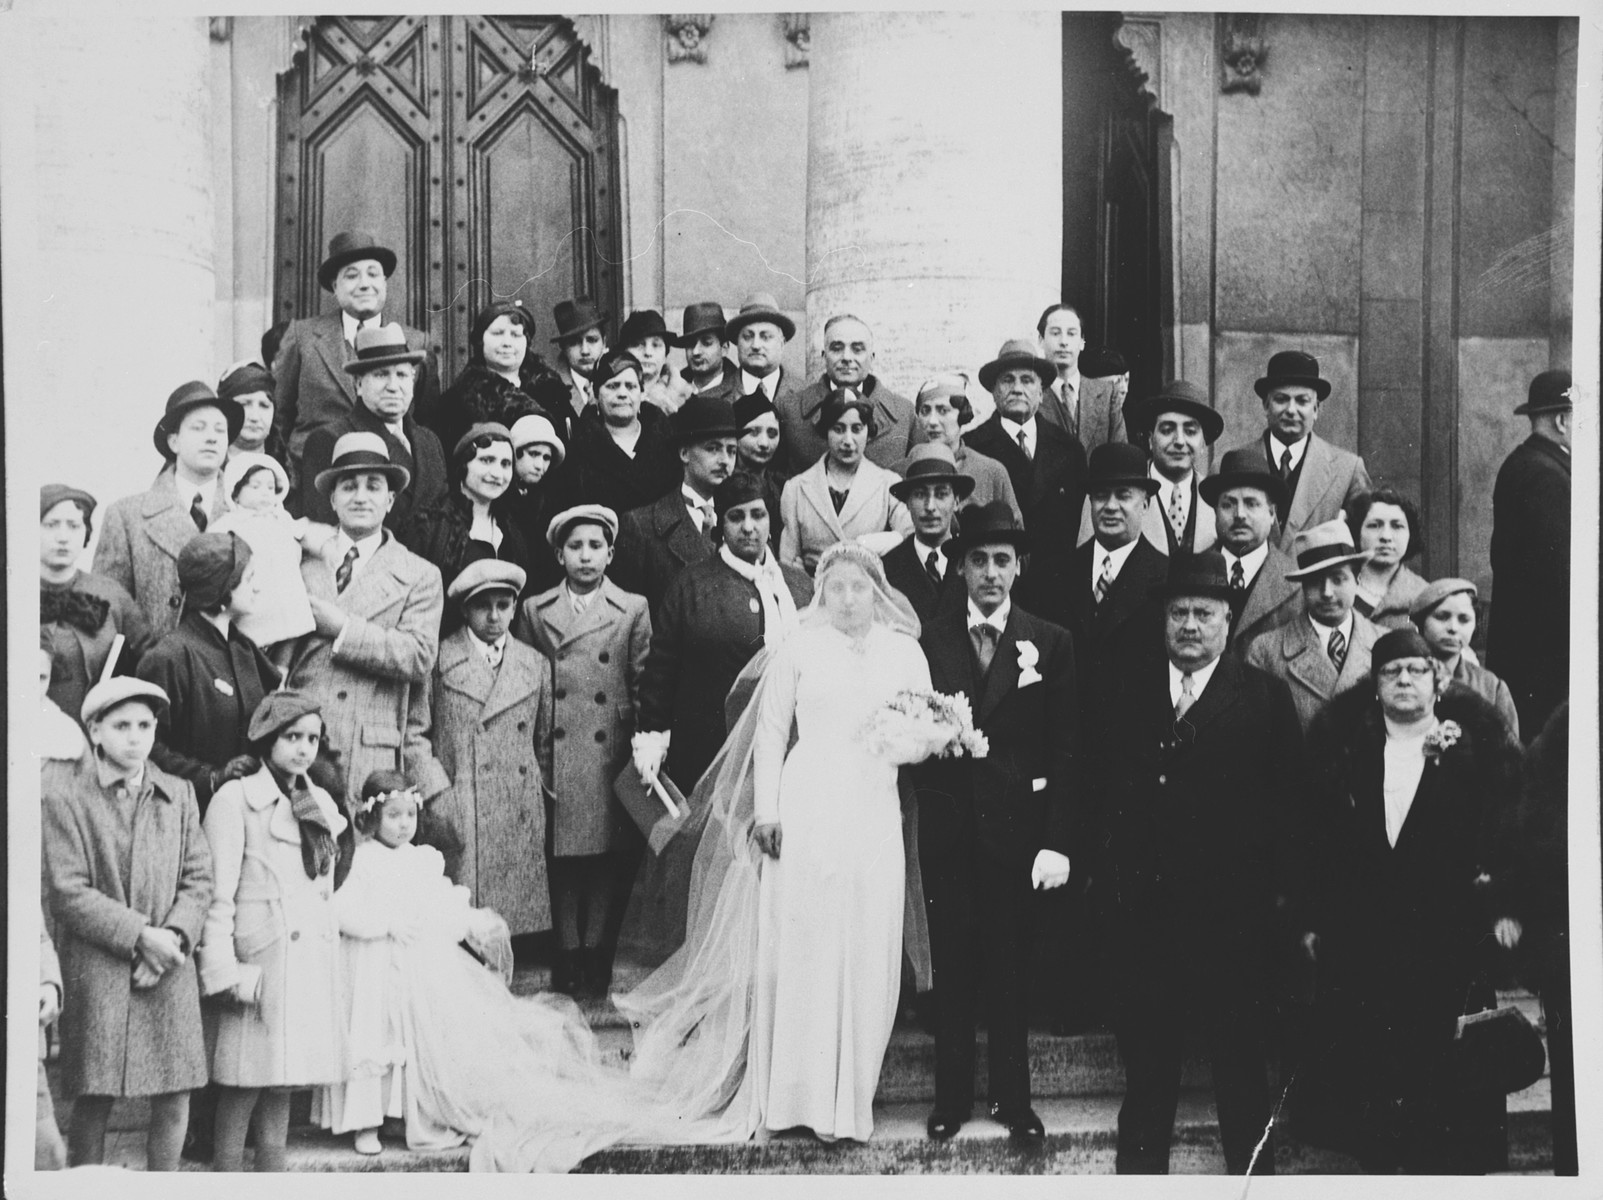 Wedding portrait of Wilhelma Spagnoletto and Mario Abbina.  On the left with the baby is Aurelio Spagnoletto and near him is Ezio Spizzichino.